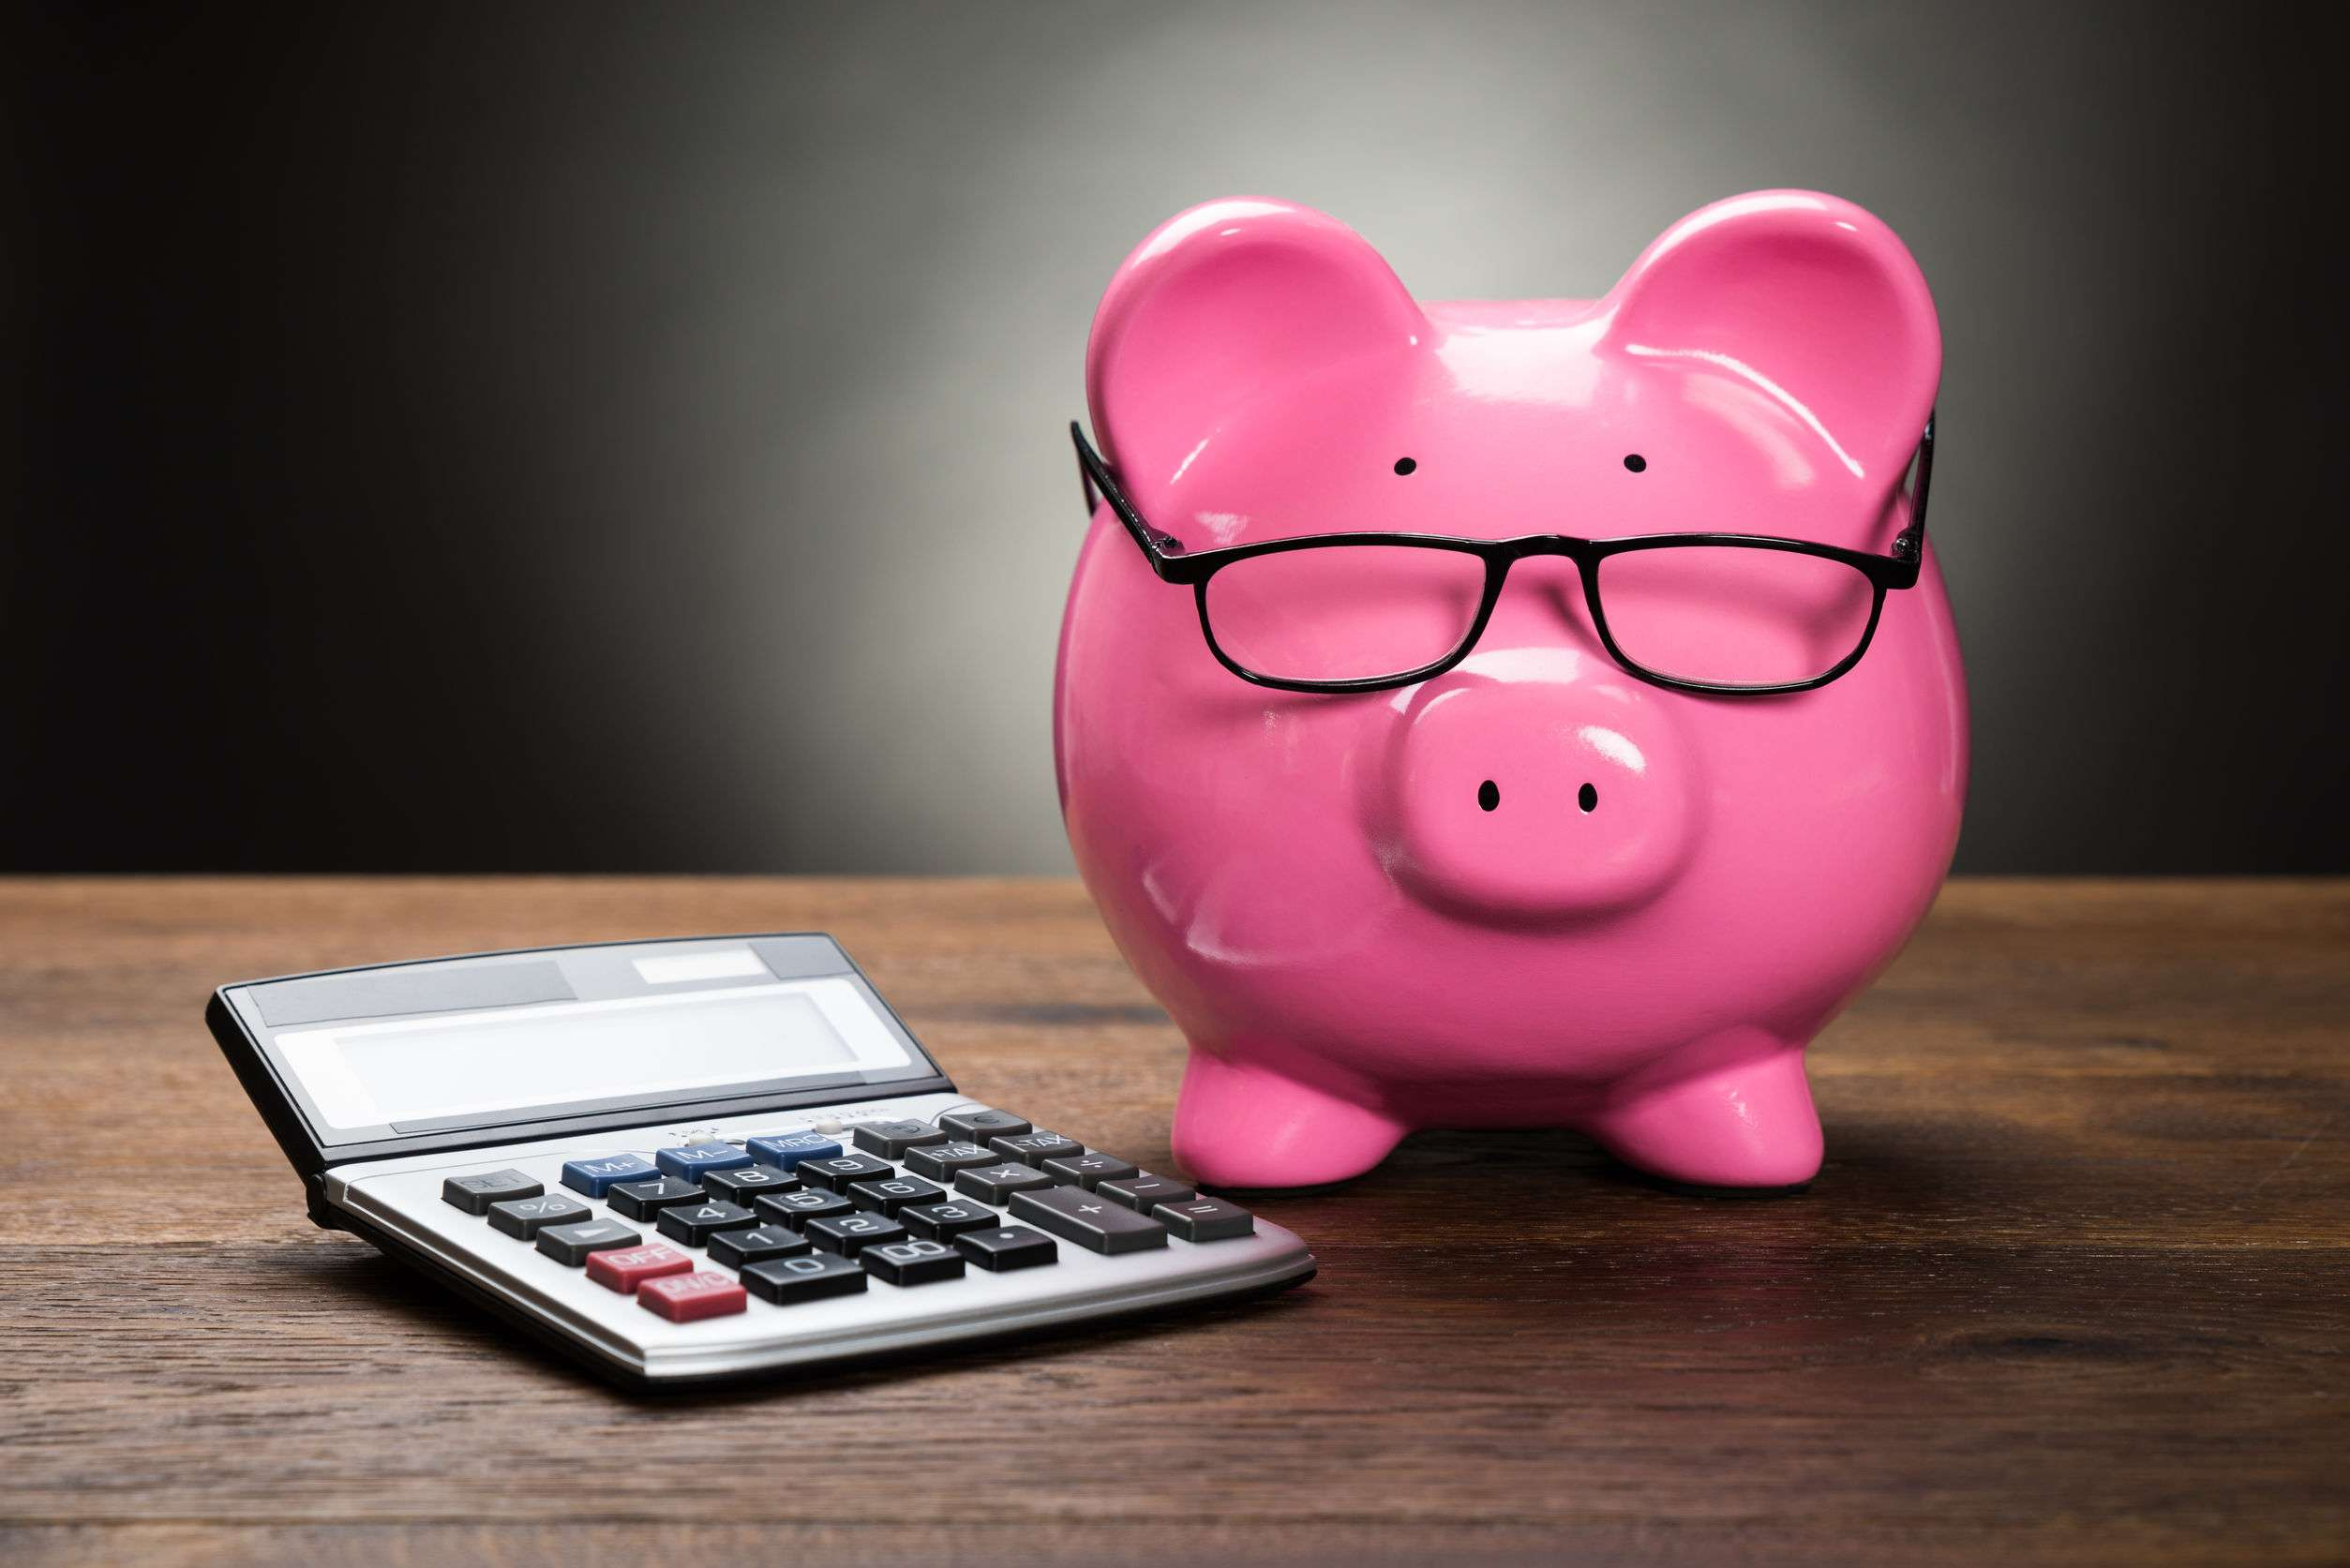 cartoon pink pig with glasses on sat next to a calculator